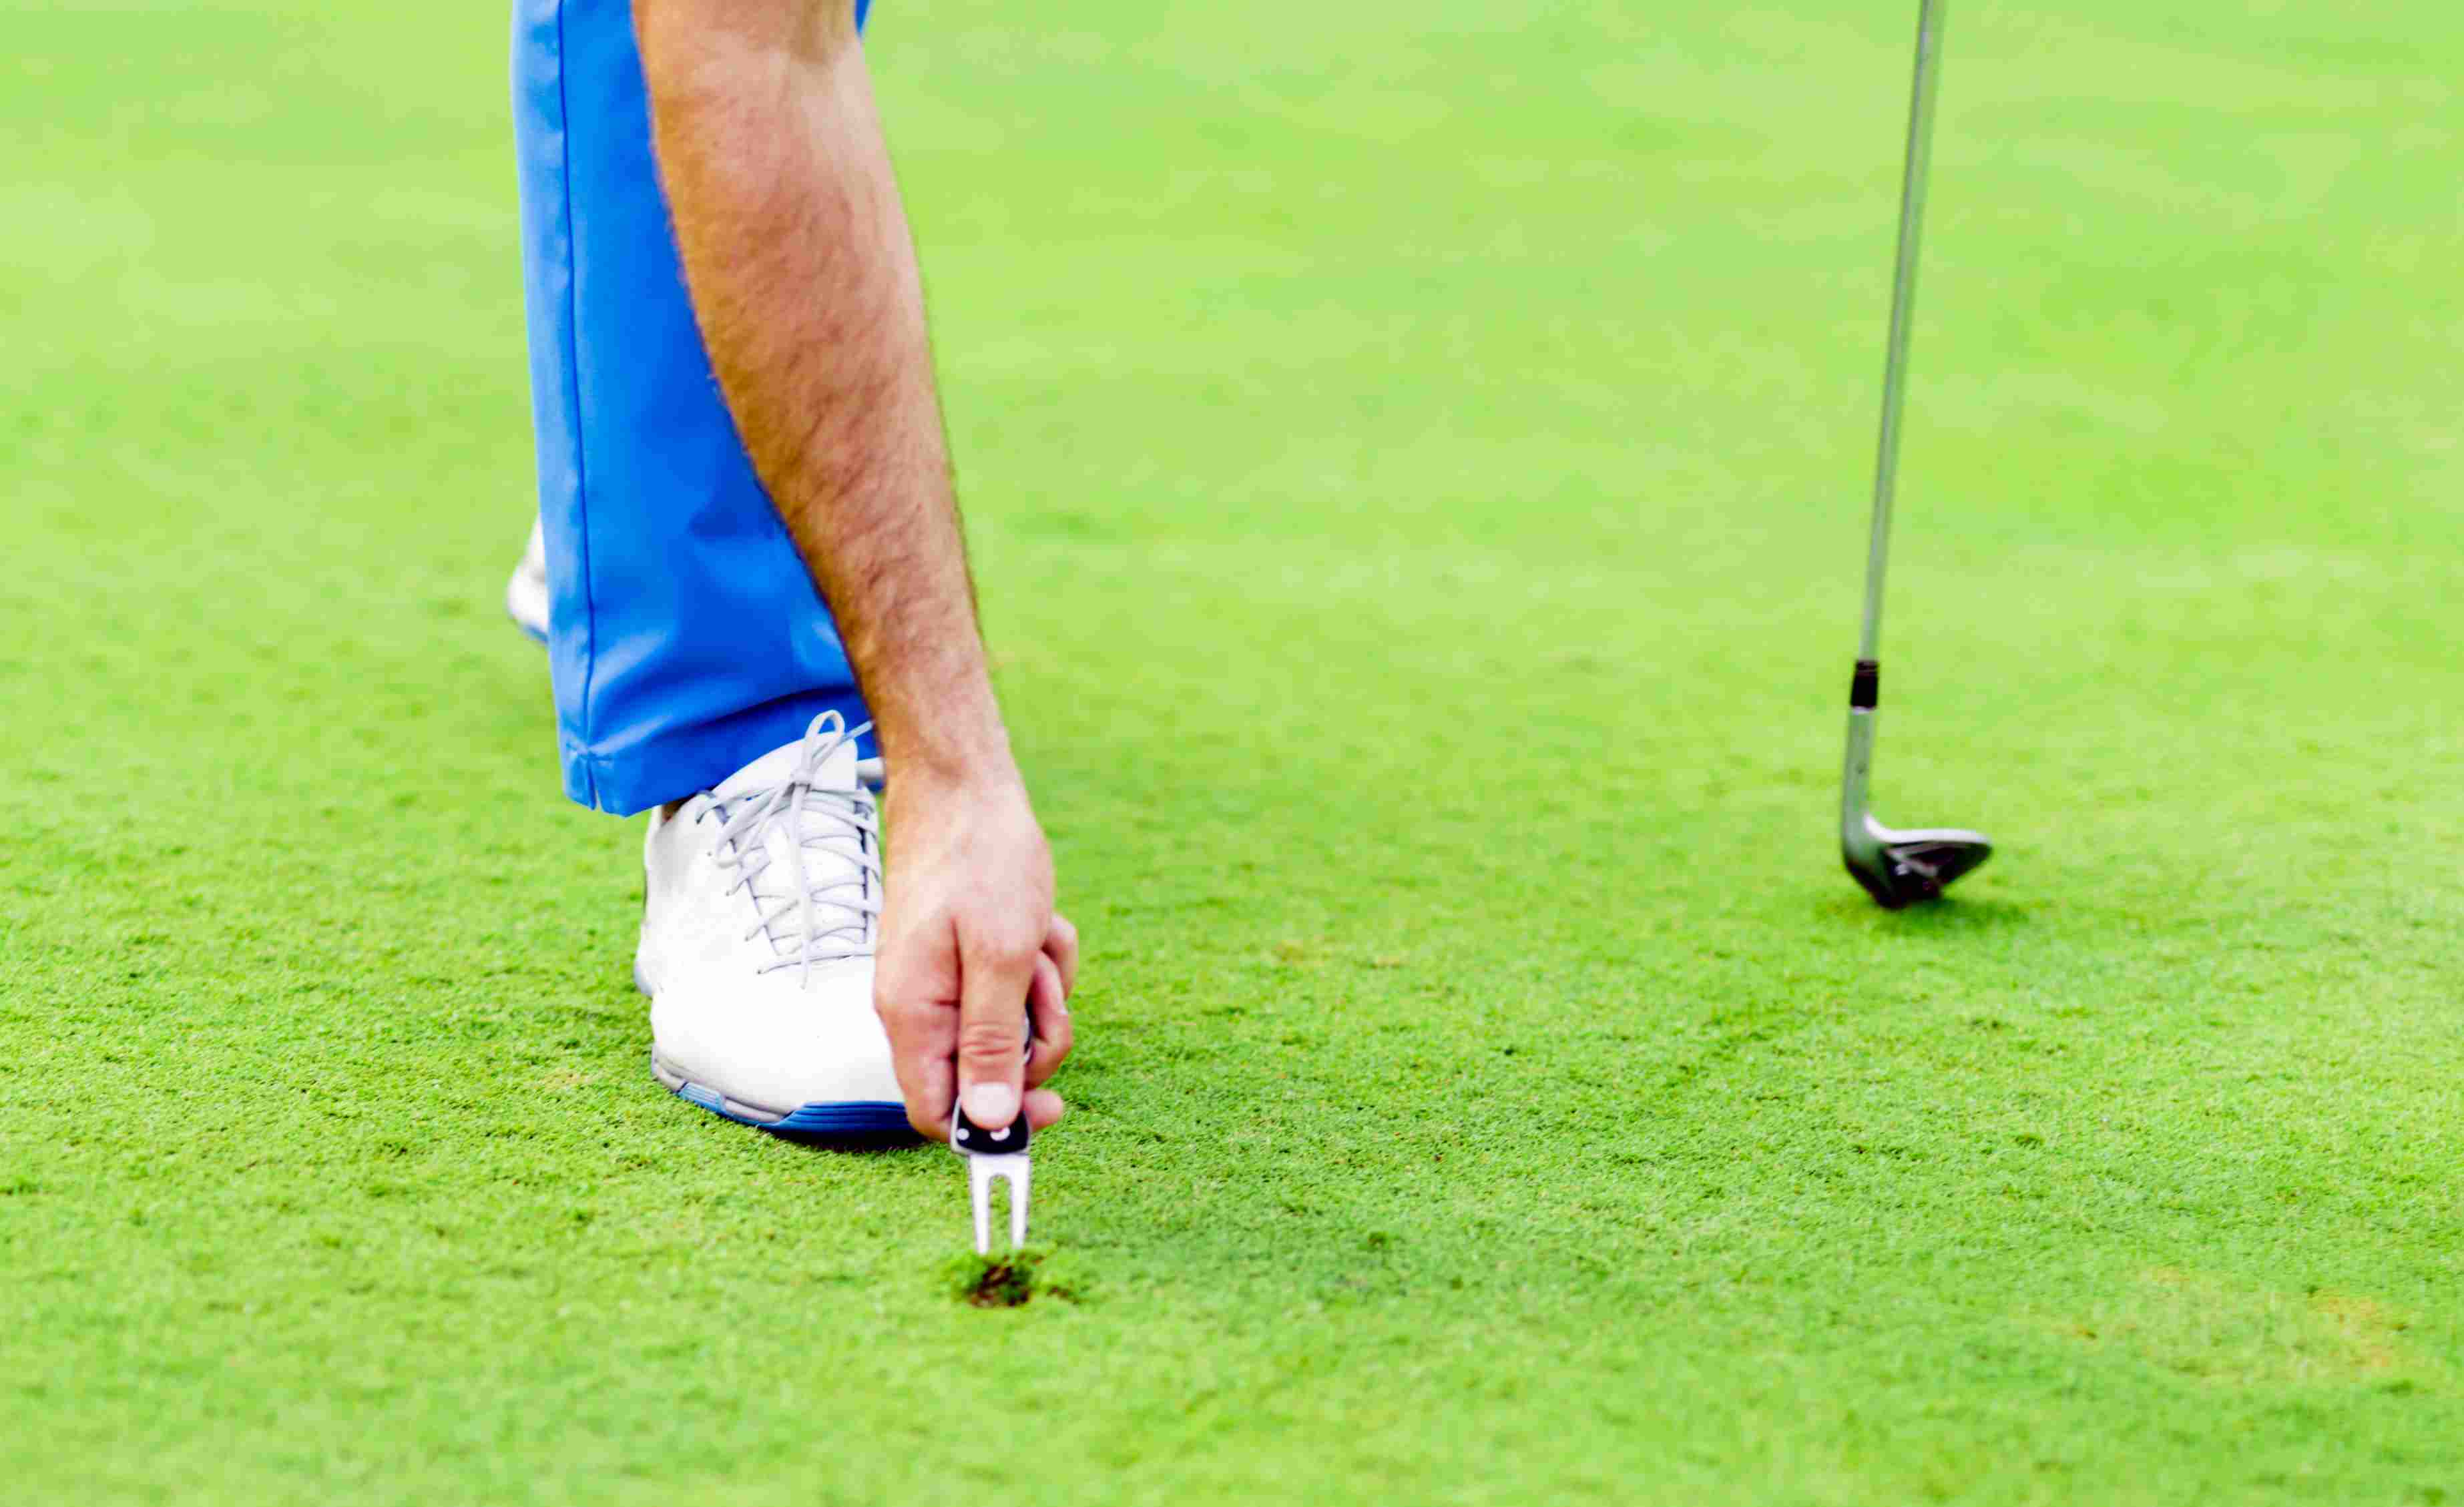 Golfer uses a divot repair tool on the putting green.